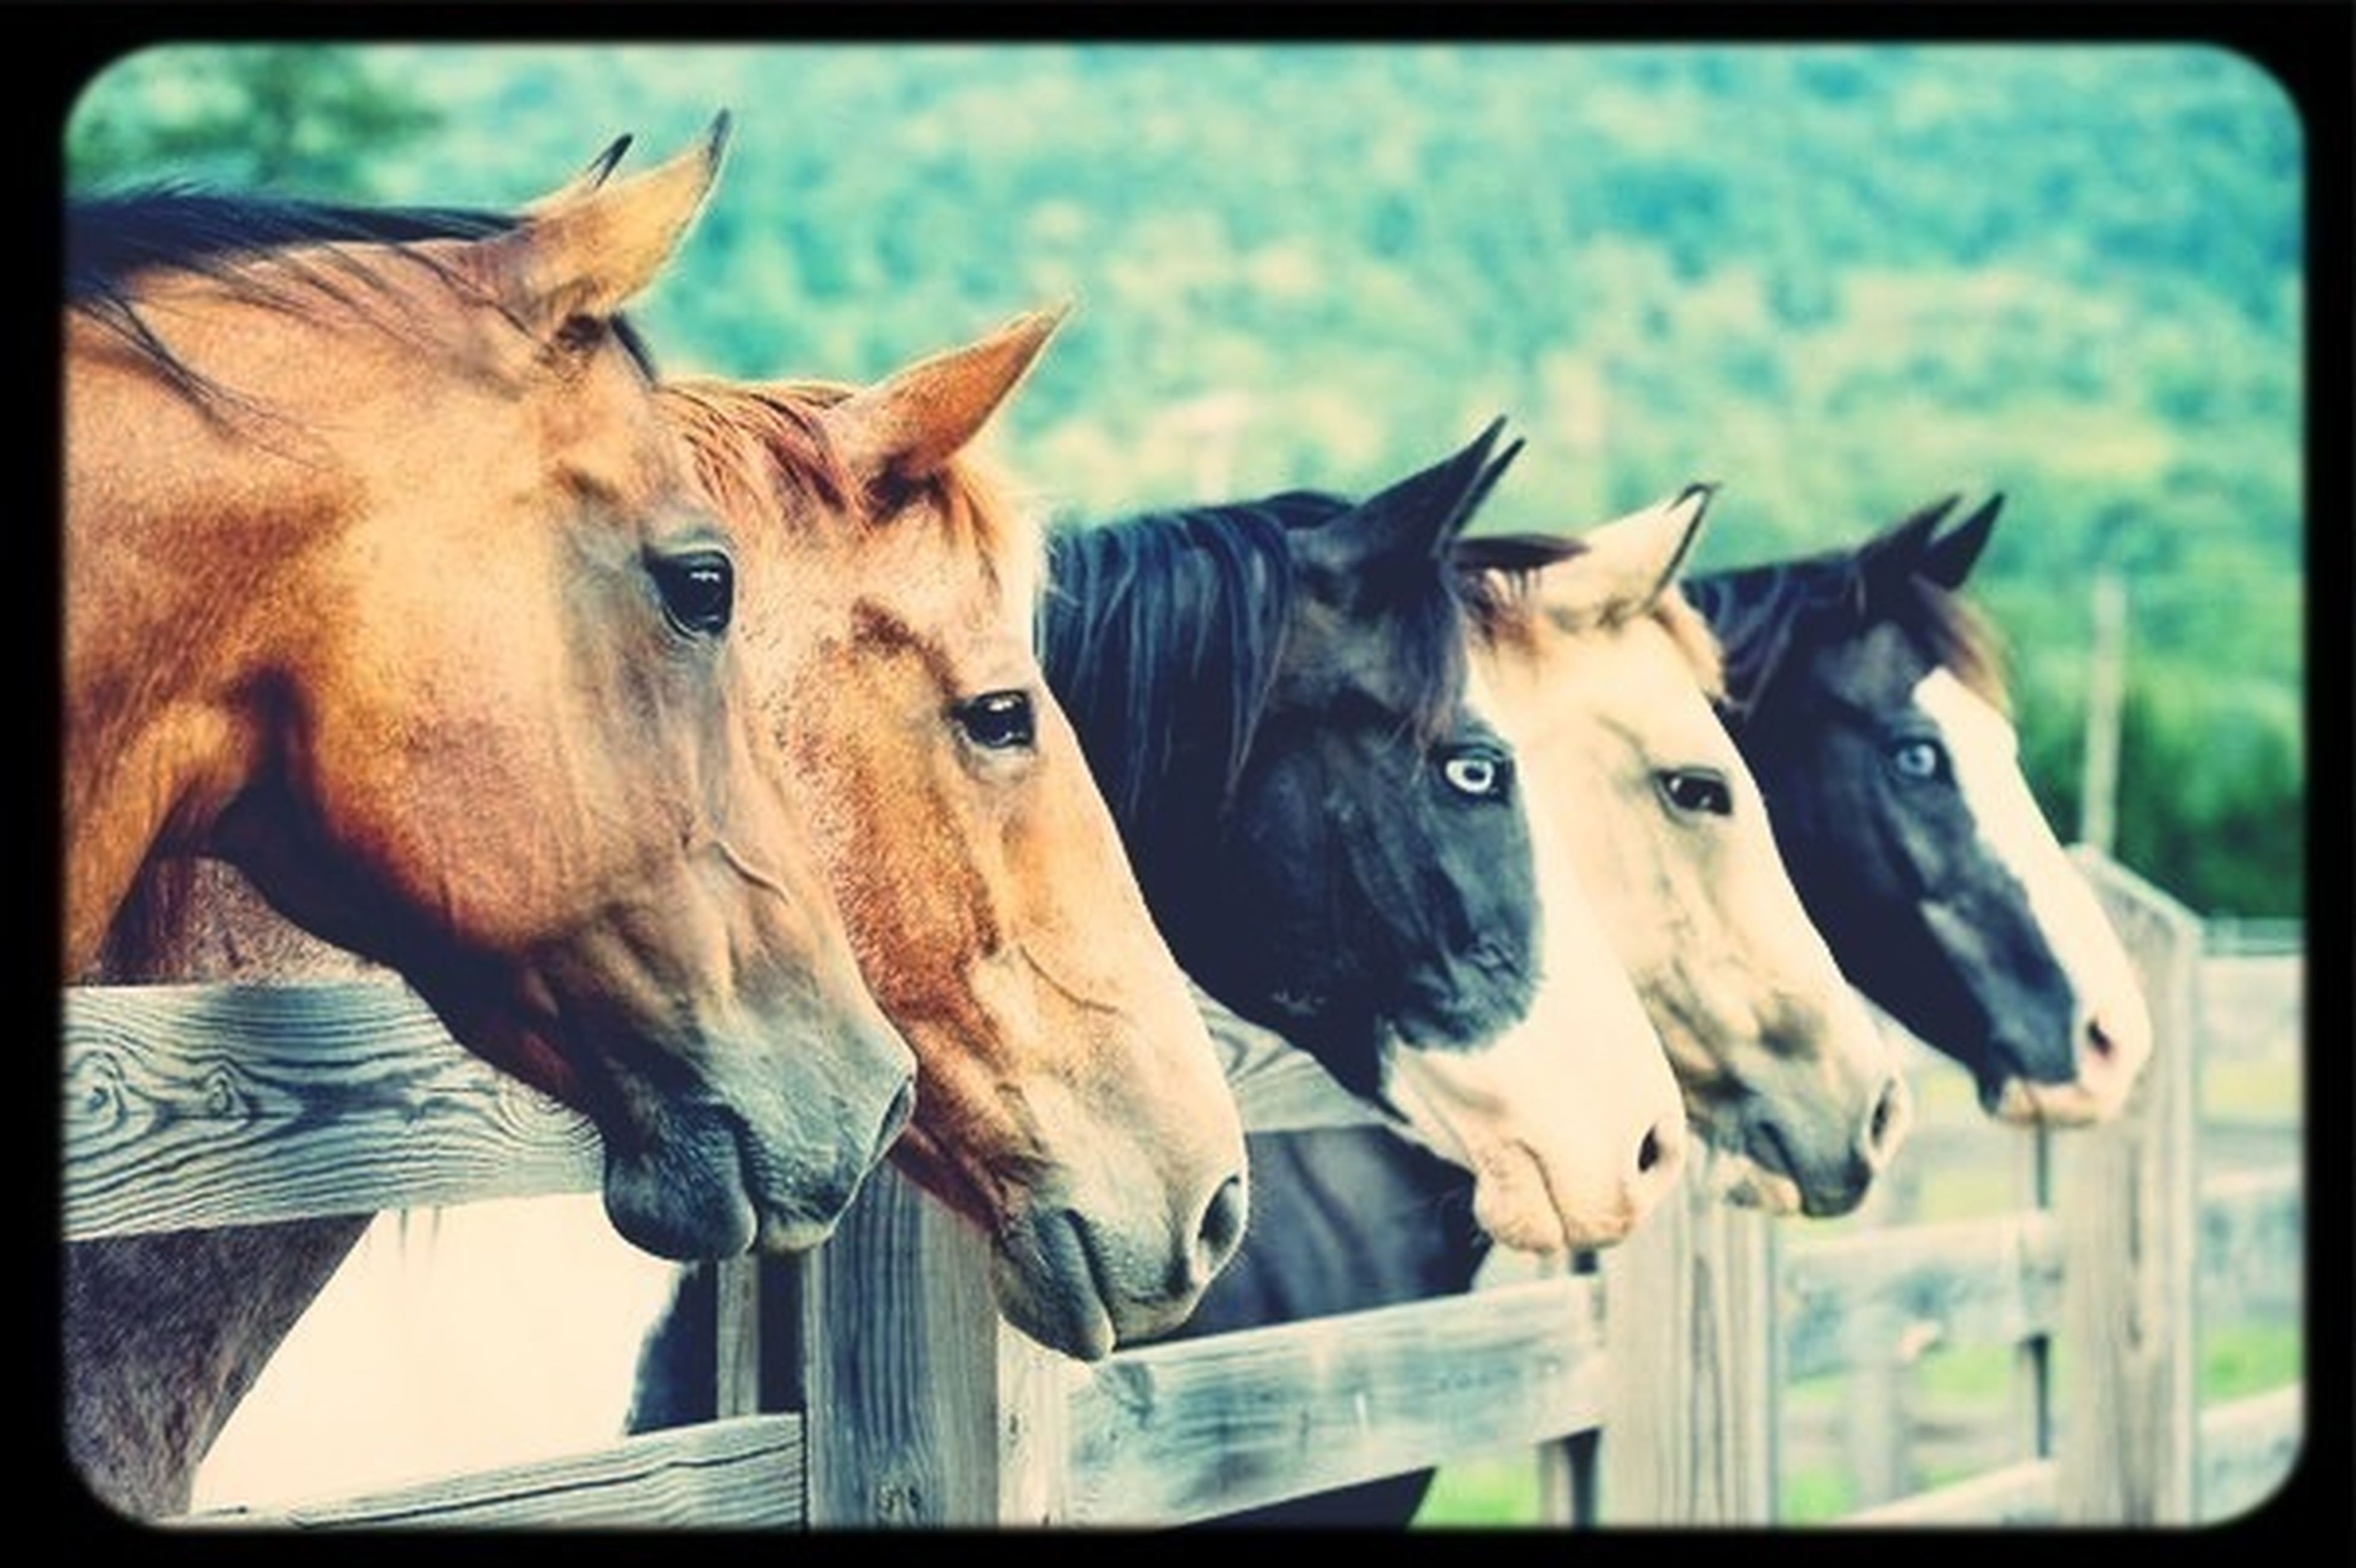 animal themes, transfer print, mammal, domestic animals, horse, auto post production filter, livestock, two animals, herbivorous, animal head, one animal, focus on foreground, fence, day, standing, close-up, outdoors, togetherness, working animal, no people